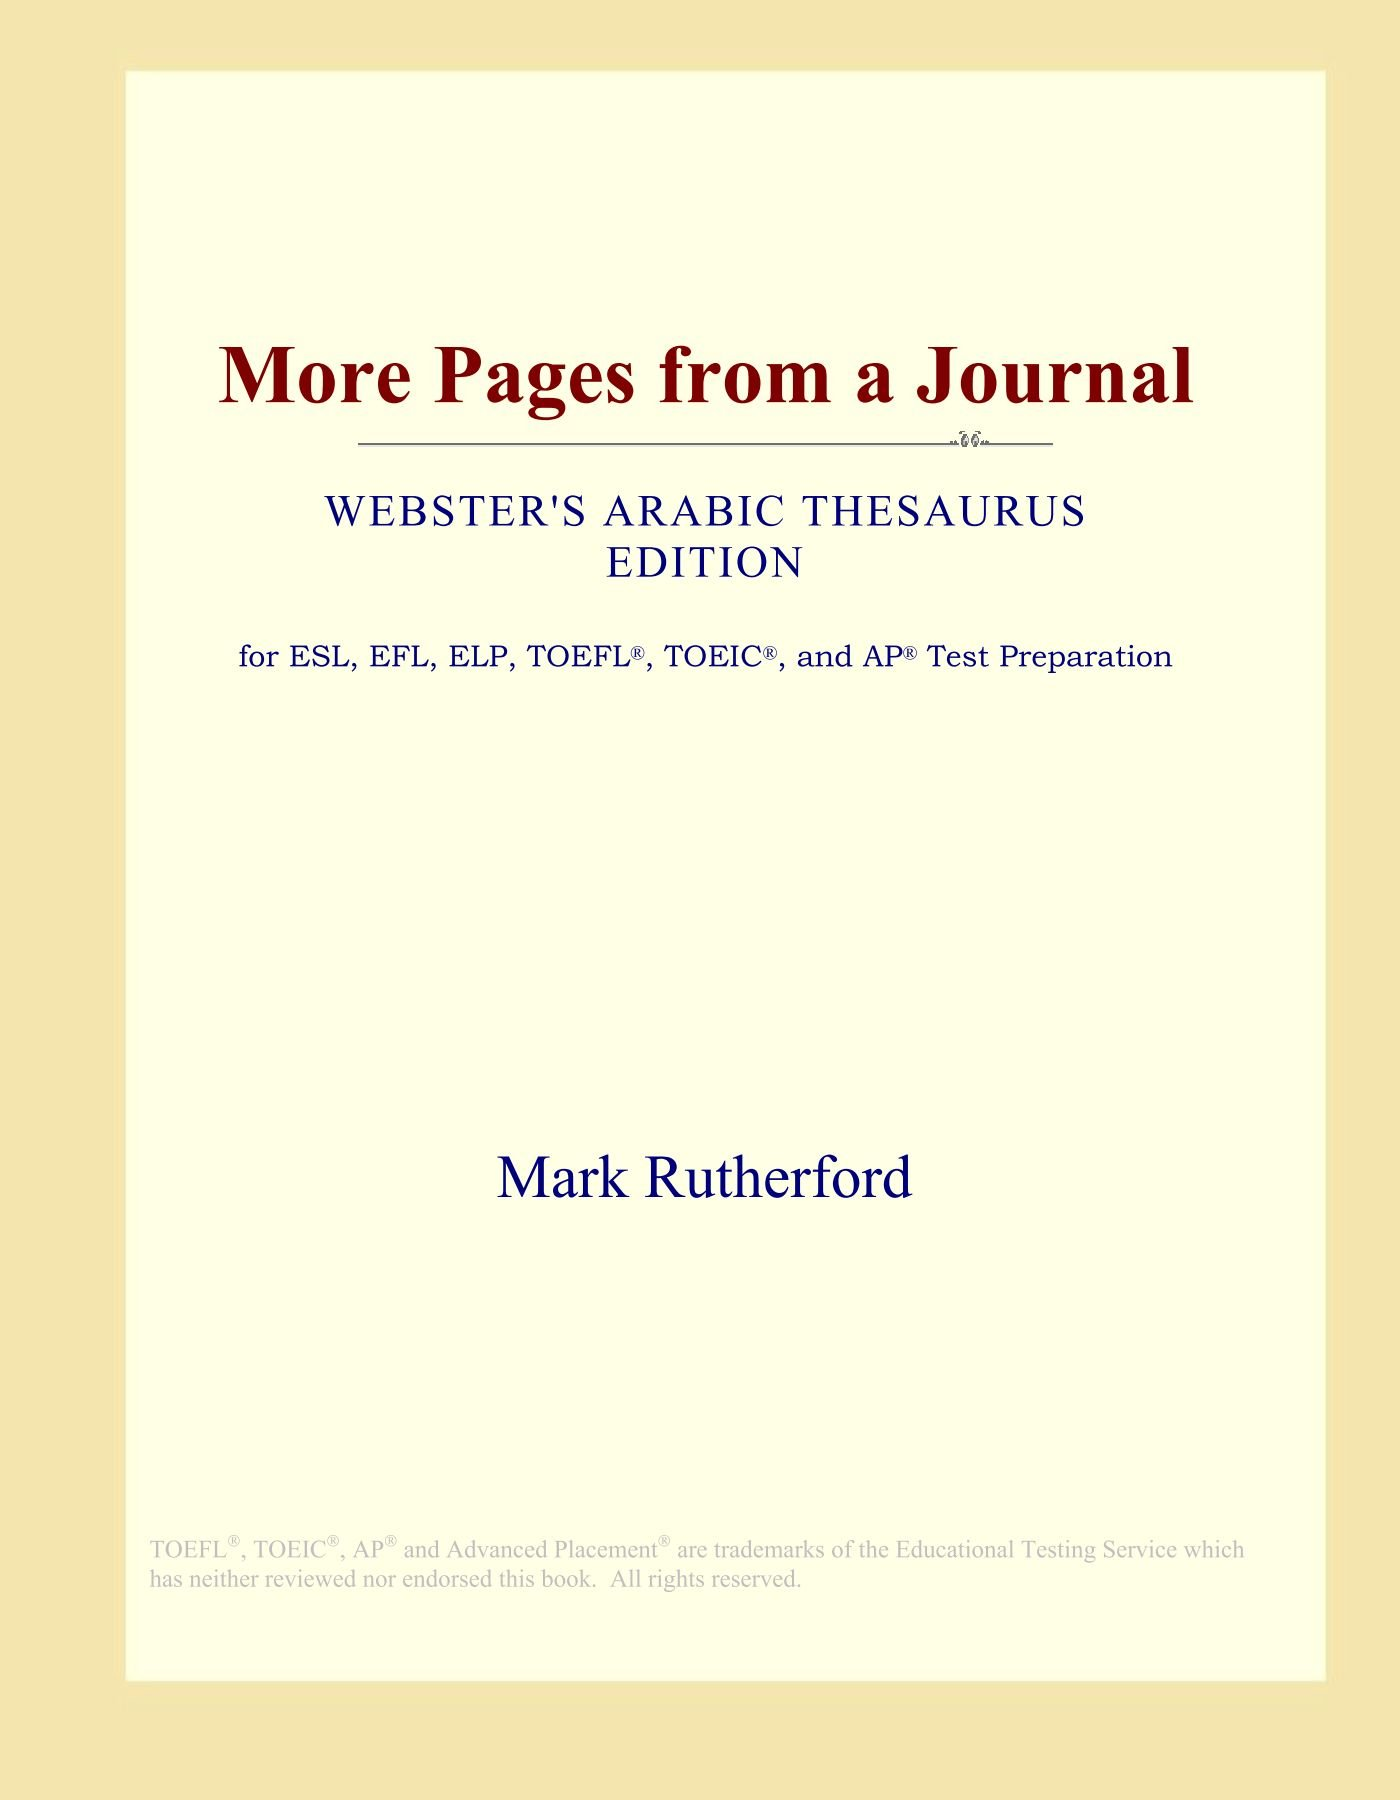 More Pages from a Journal (Webster's Arabic Thesaurus Edition) pdf